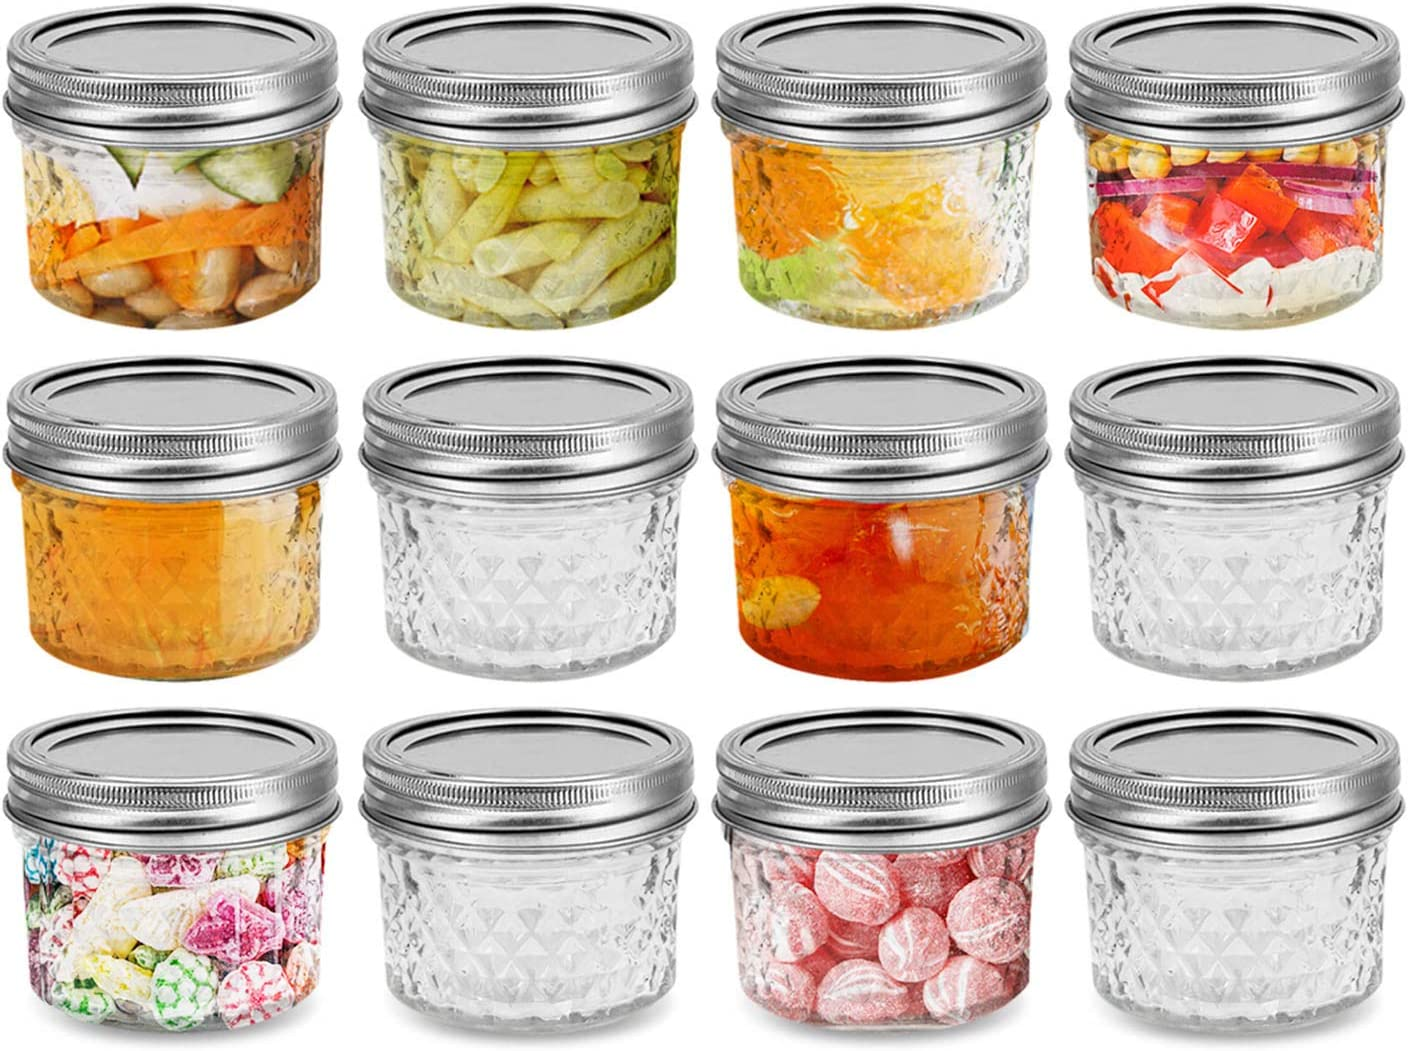 FRUITEAM 4 oz 12 PACK Mini Mason Jars with Lids and Bands, Quilted Crystal Jars Ideal for Food Storage, Jam, Body Butters, Jelly, Wedding Favors, Baby Foods